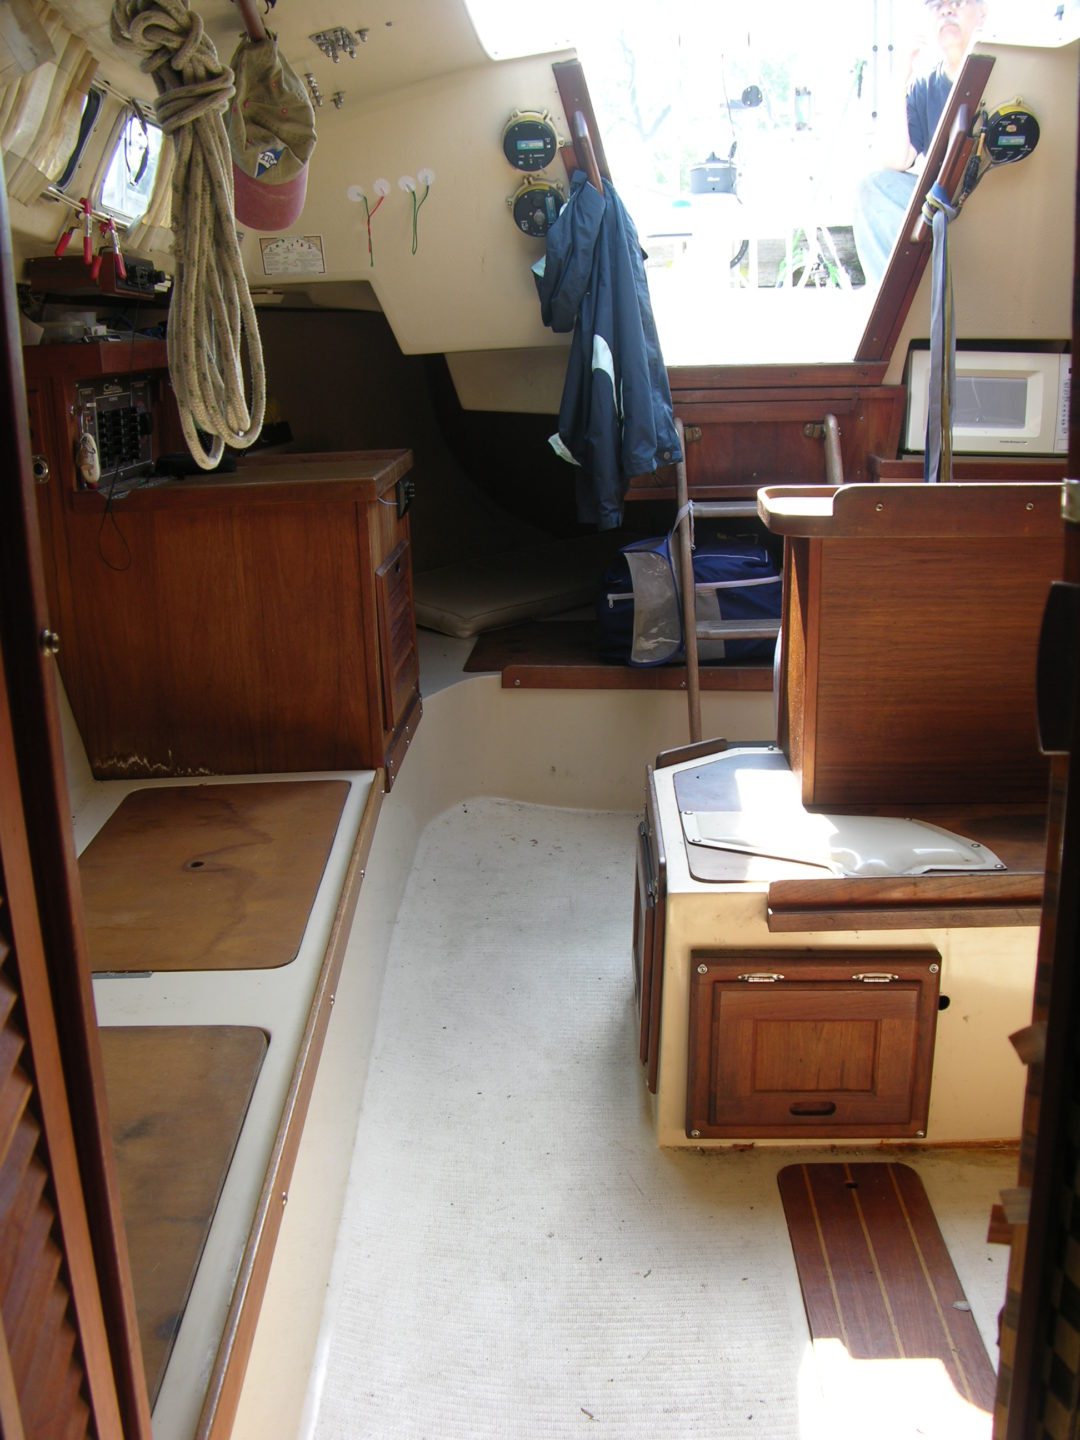 Organized Boat After